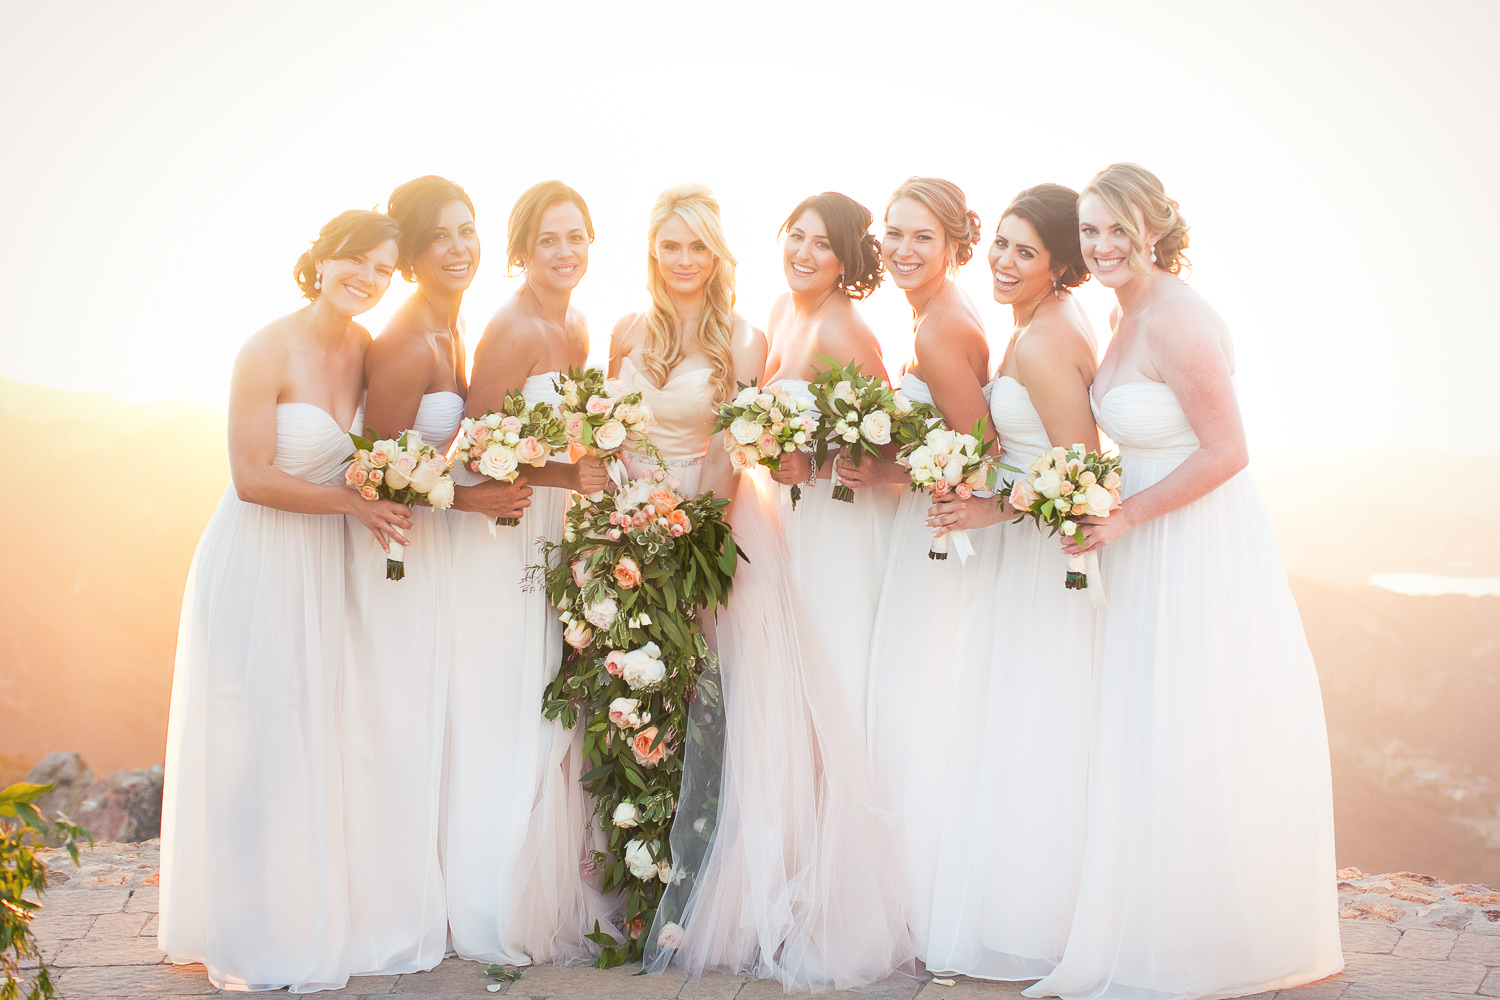 Malibu Rocky Oaks Photographer - Bridal Party